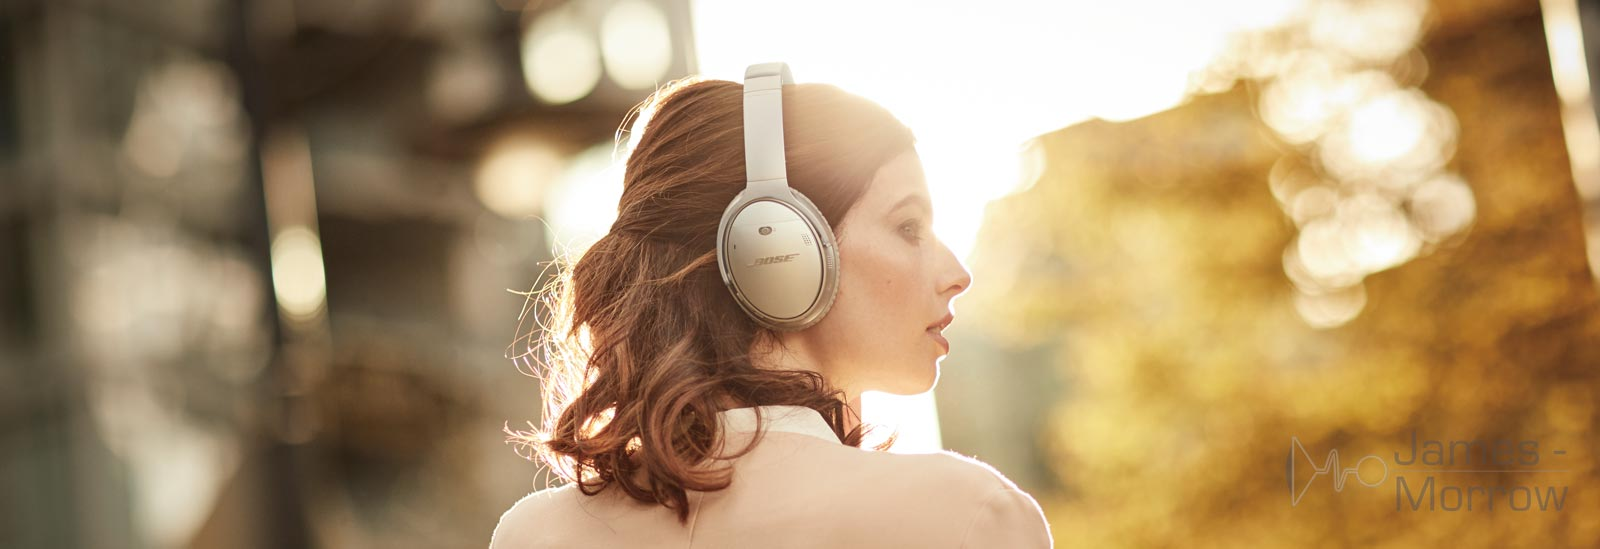 Bose QuietComfort 35 II Silver being worn by woman side profile lifestyle banner image